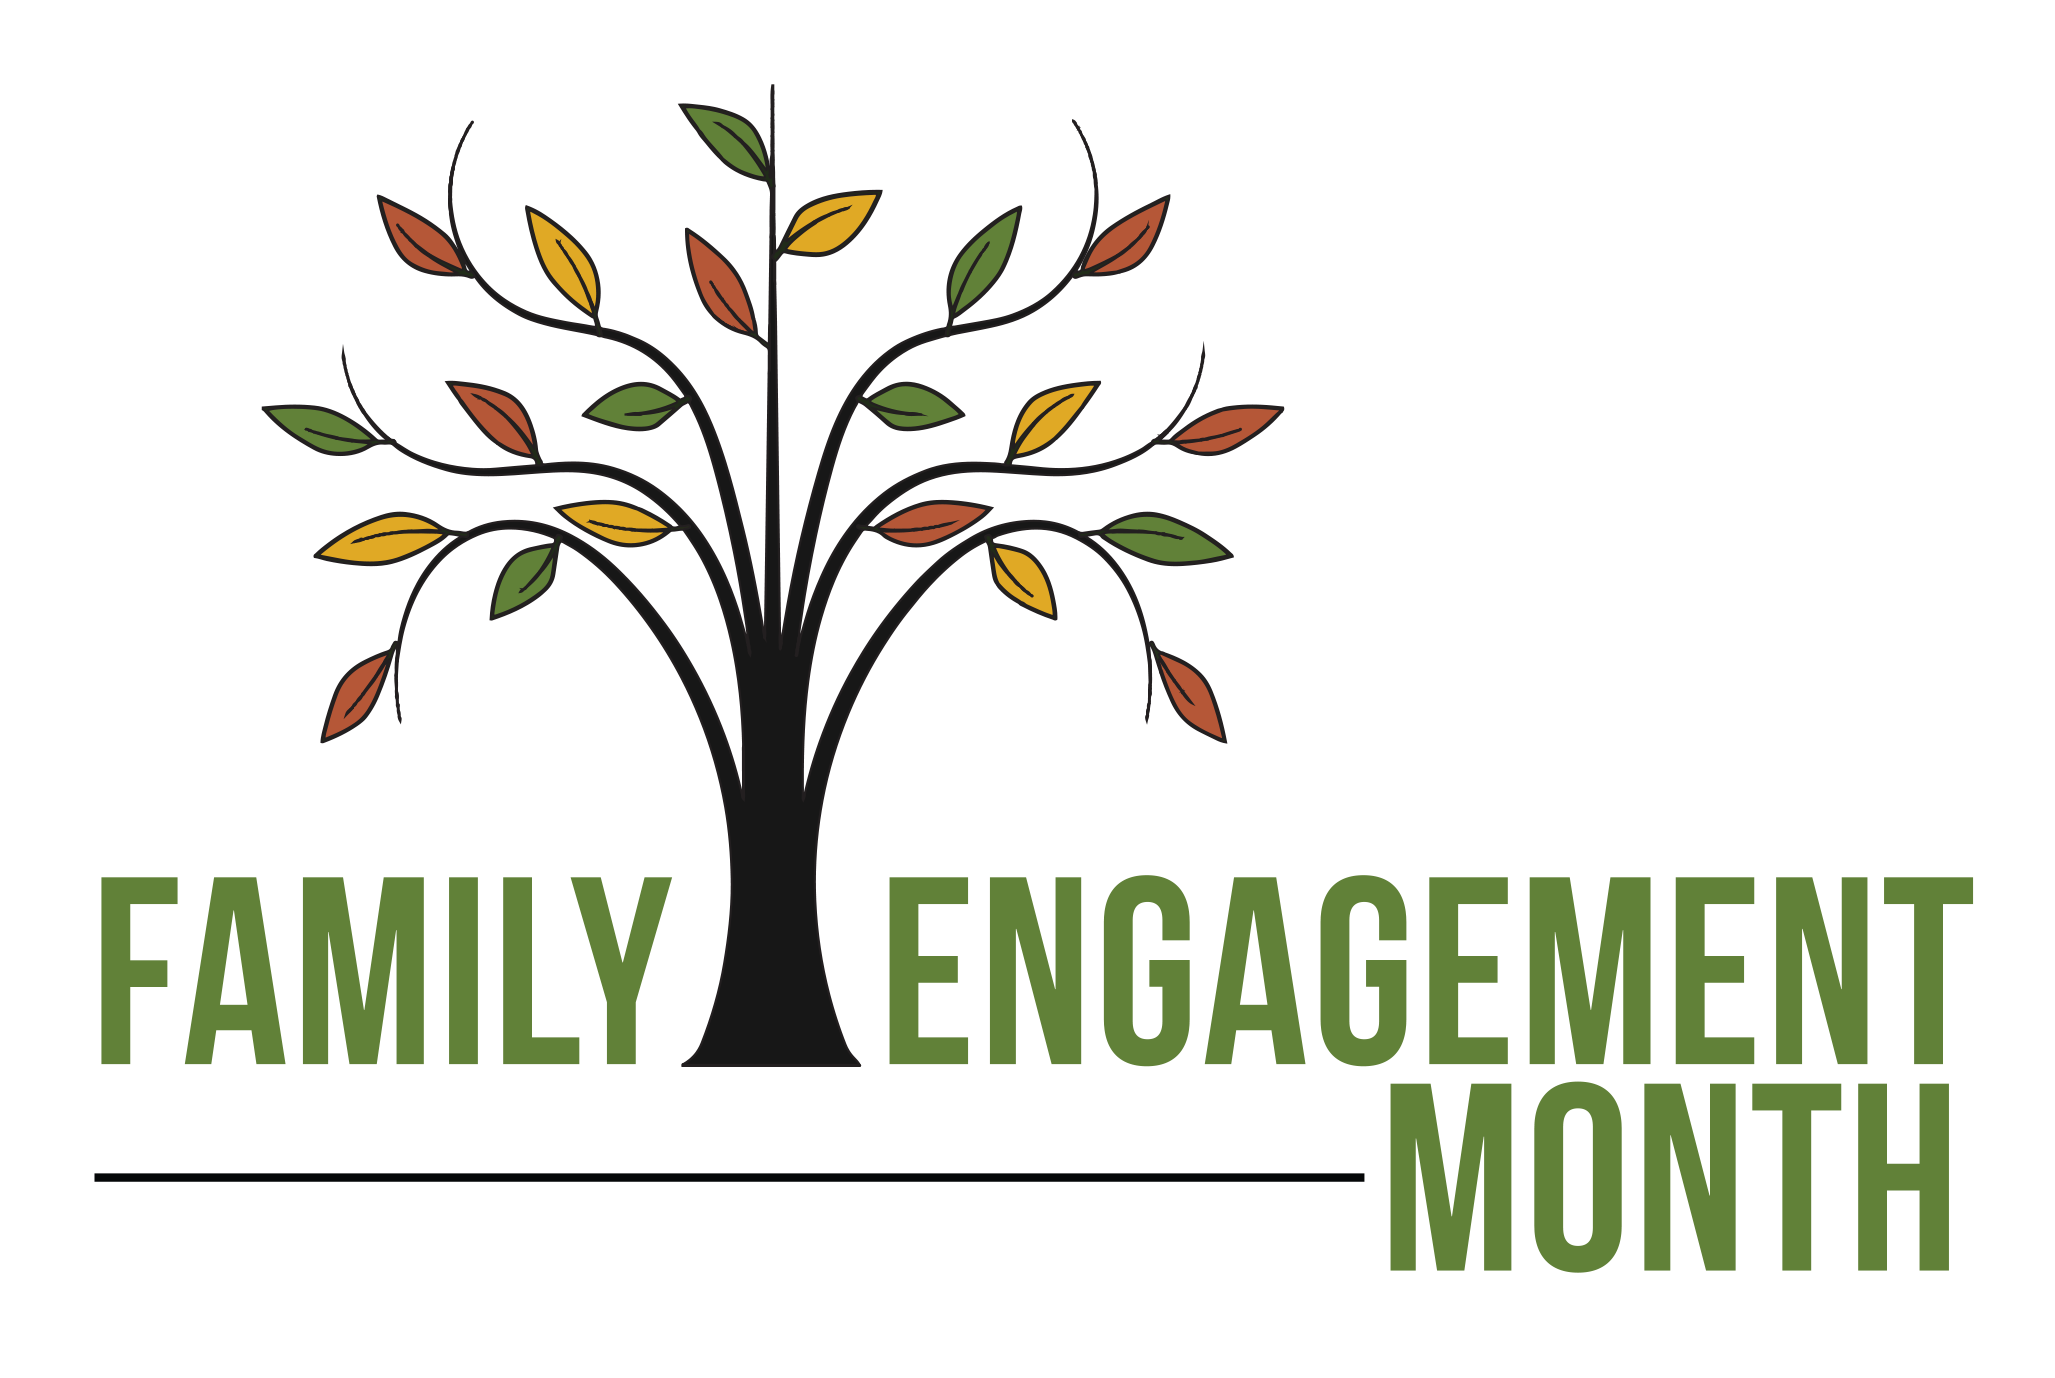 parent engagement Parent engagement matters study after study has shown us that student achievement improves when parents play an active role in their children's education, and that good schools become even.